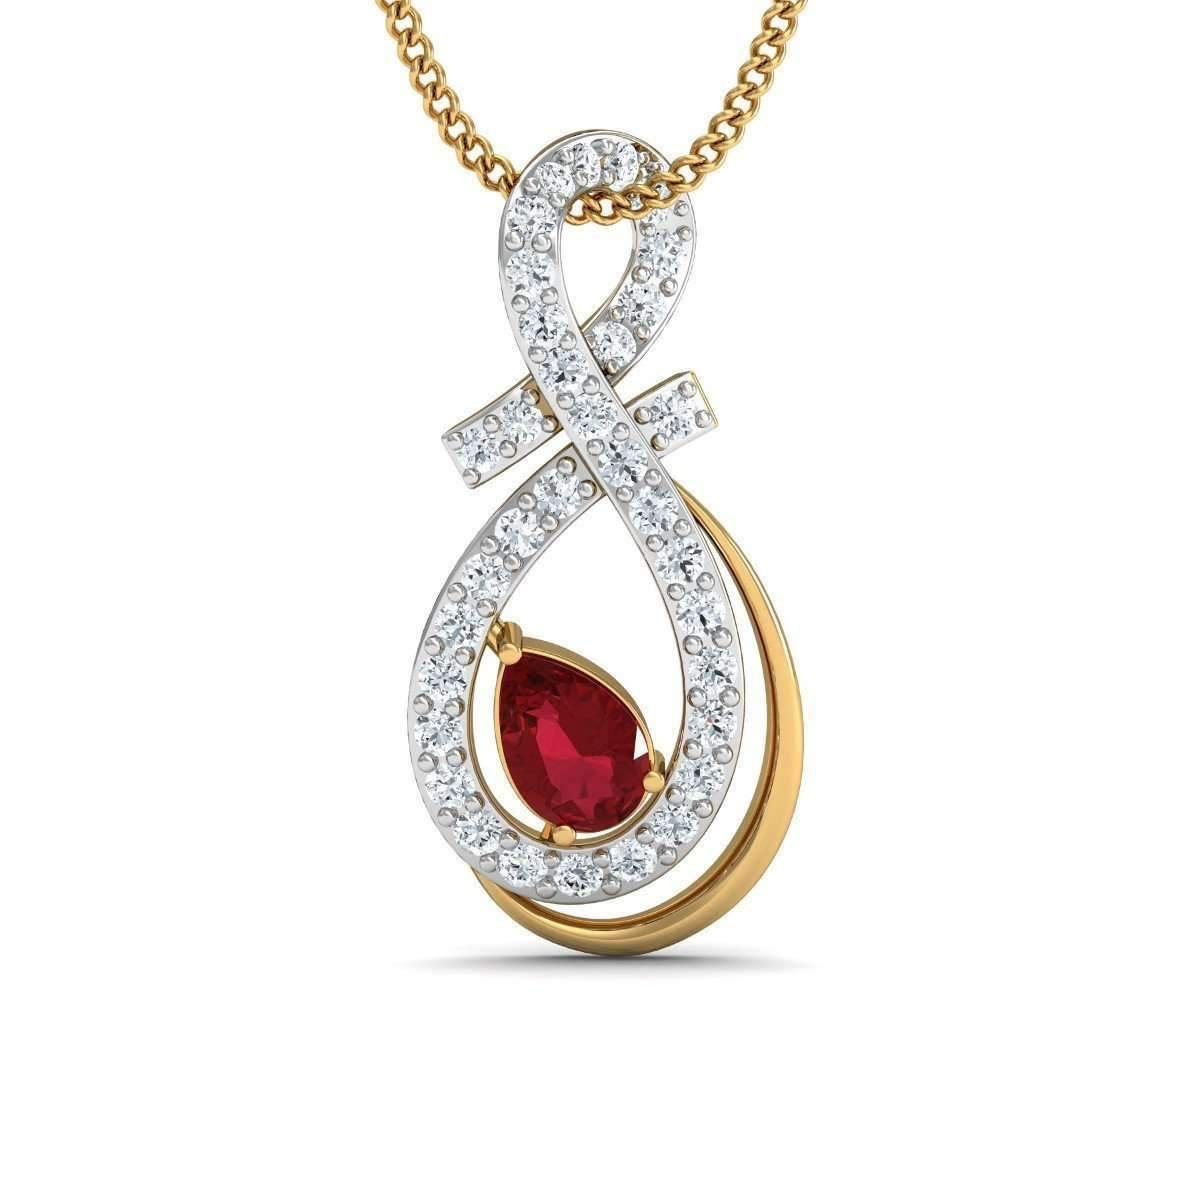 Diamoire Jewels Diamond and Pear Cut Ruby Pendant Hand-carved From 18kt Yellow Gold IwiIP